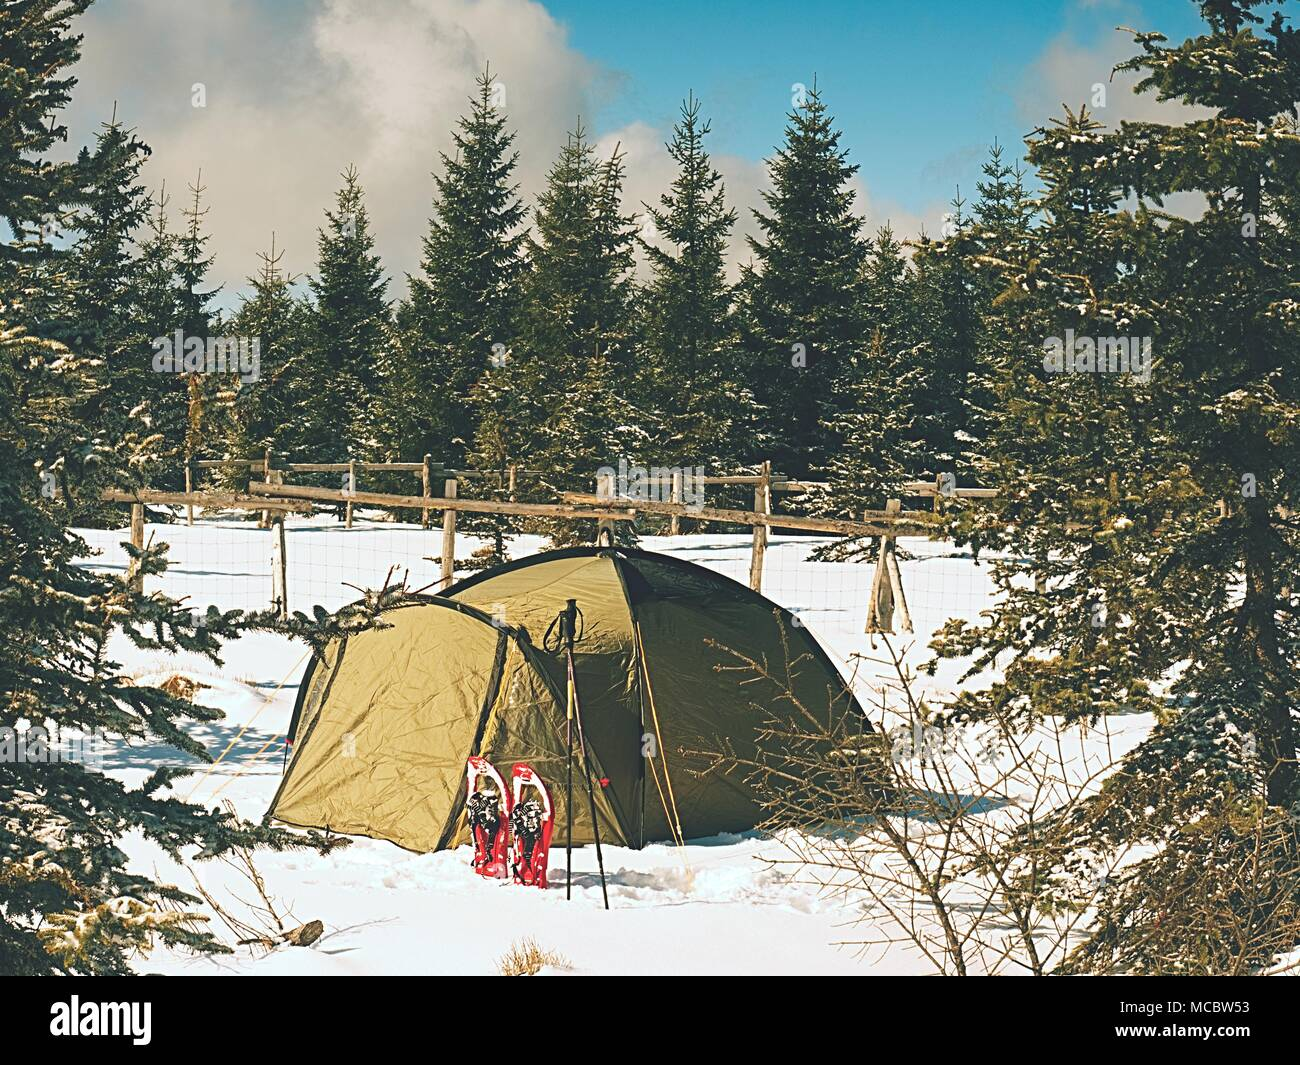 Camping during winter hiking in mountains. Green touristic tent under spruces. Stock Photo